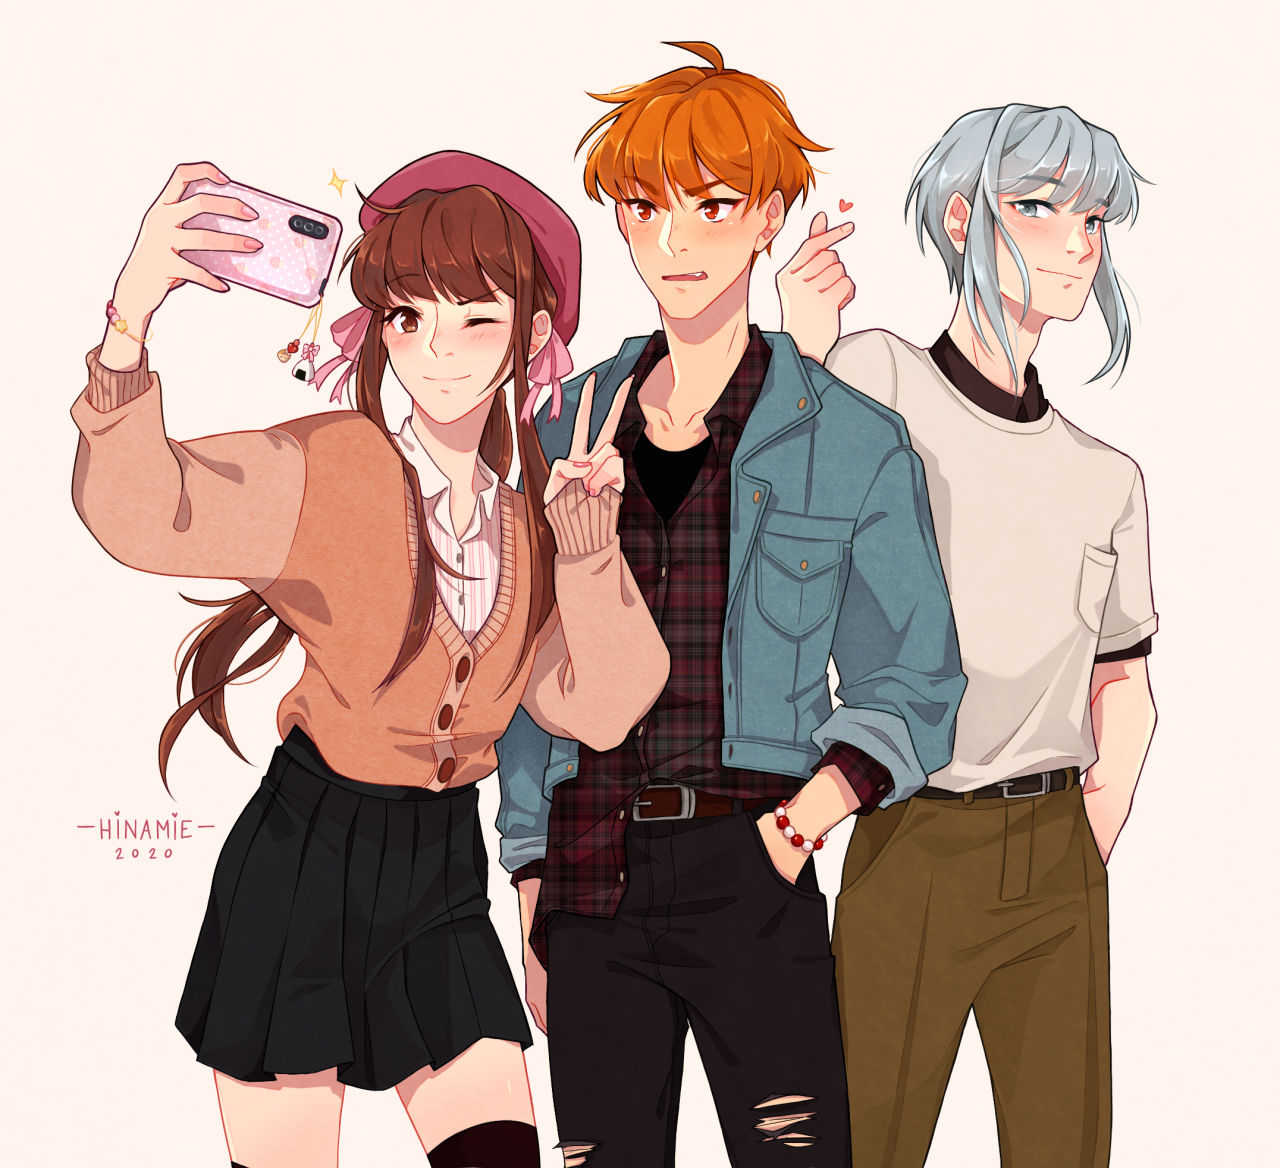 Book of Friends — hinamie group selfie to celebrate